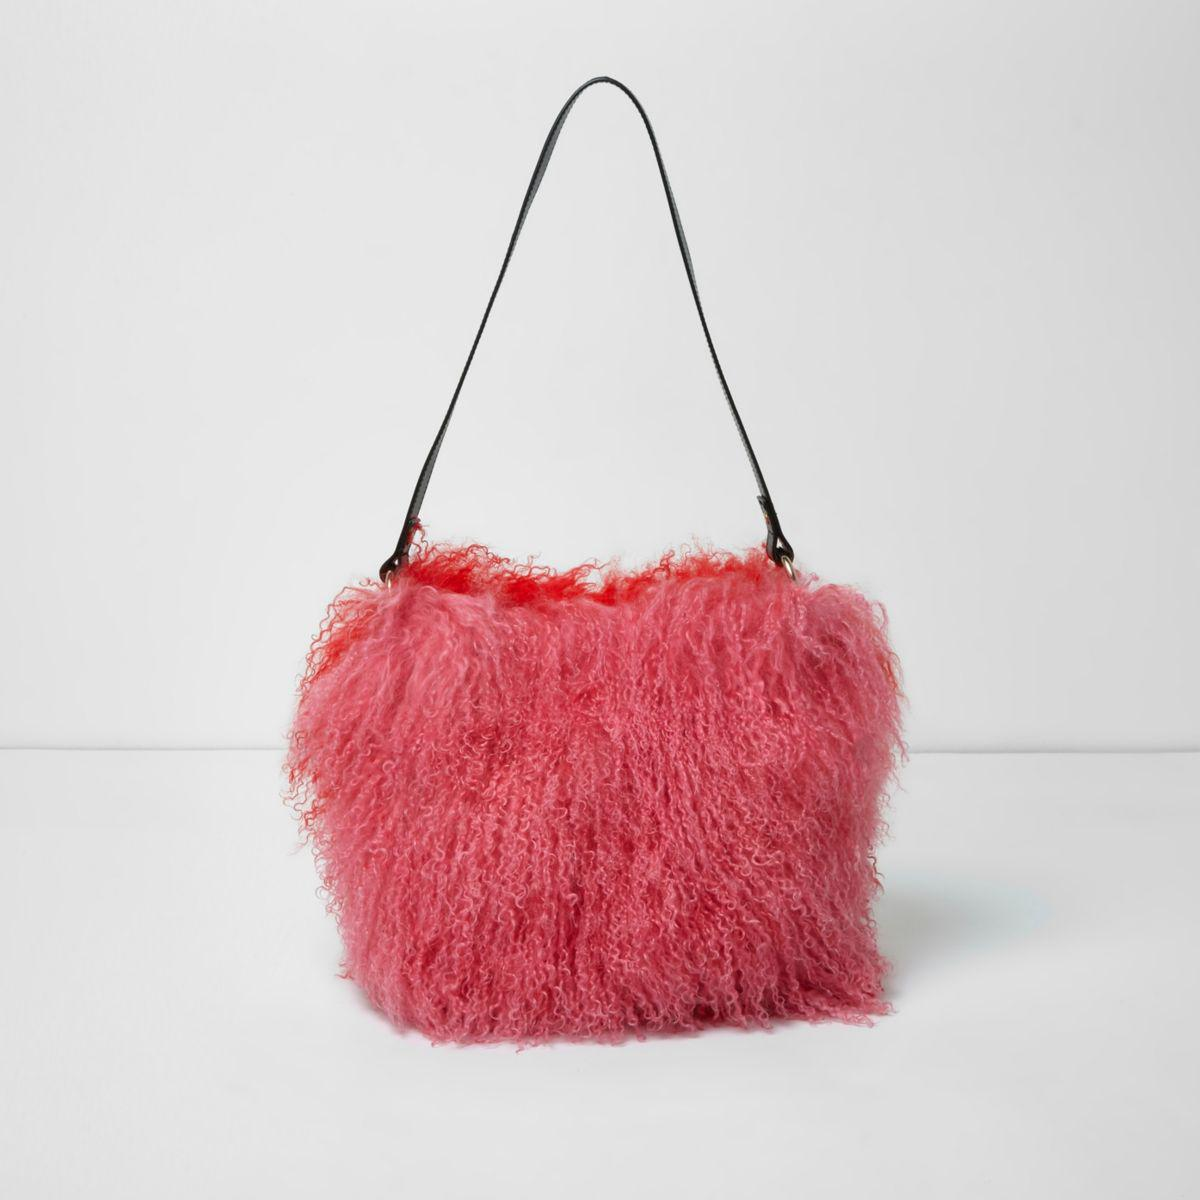 bab5c97d2101 Lyst - River Island Pink And Red Mongolian Fur Leather Bucket Bag in ...